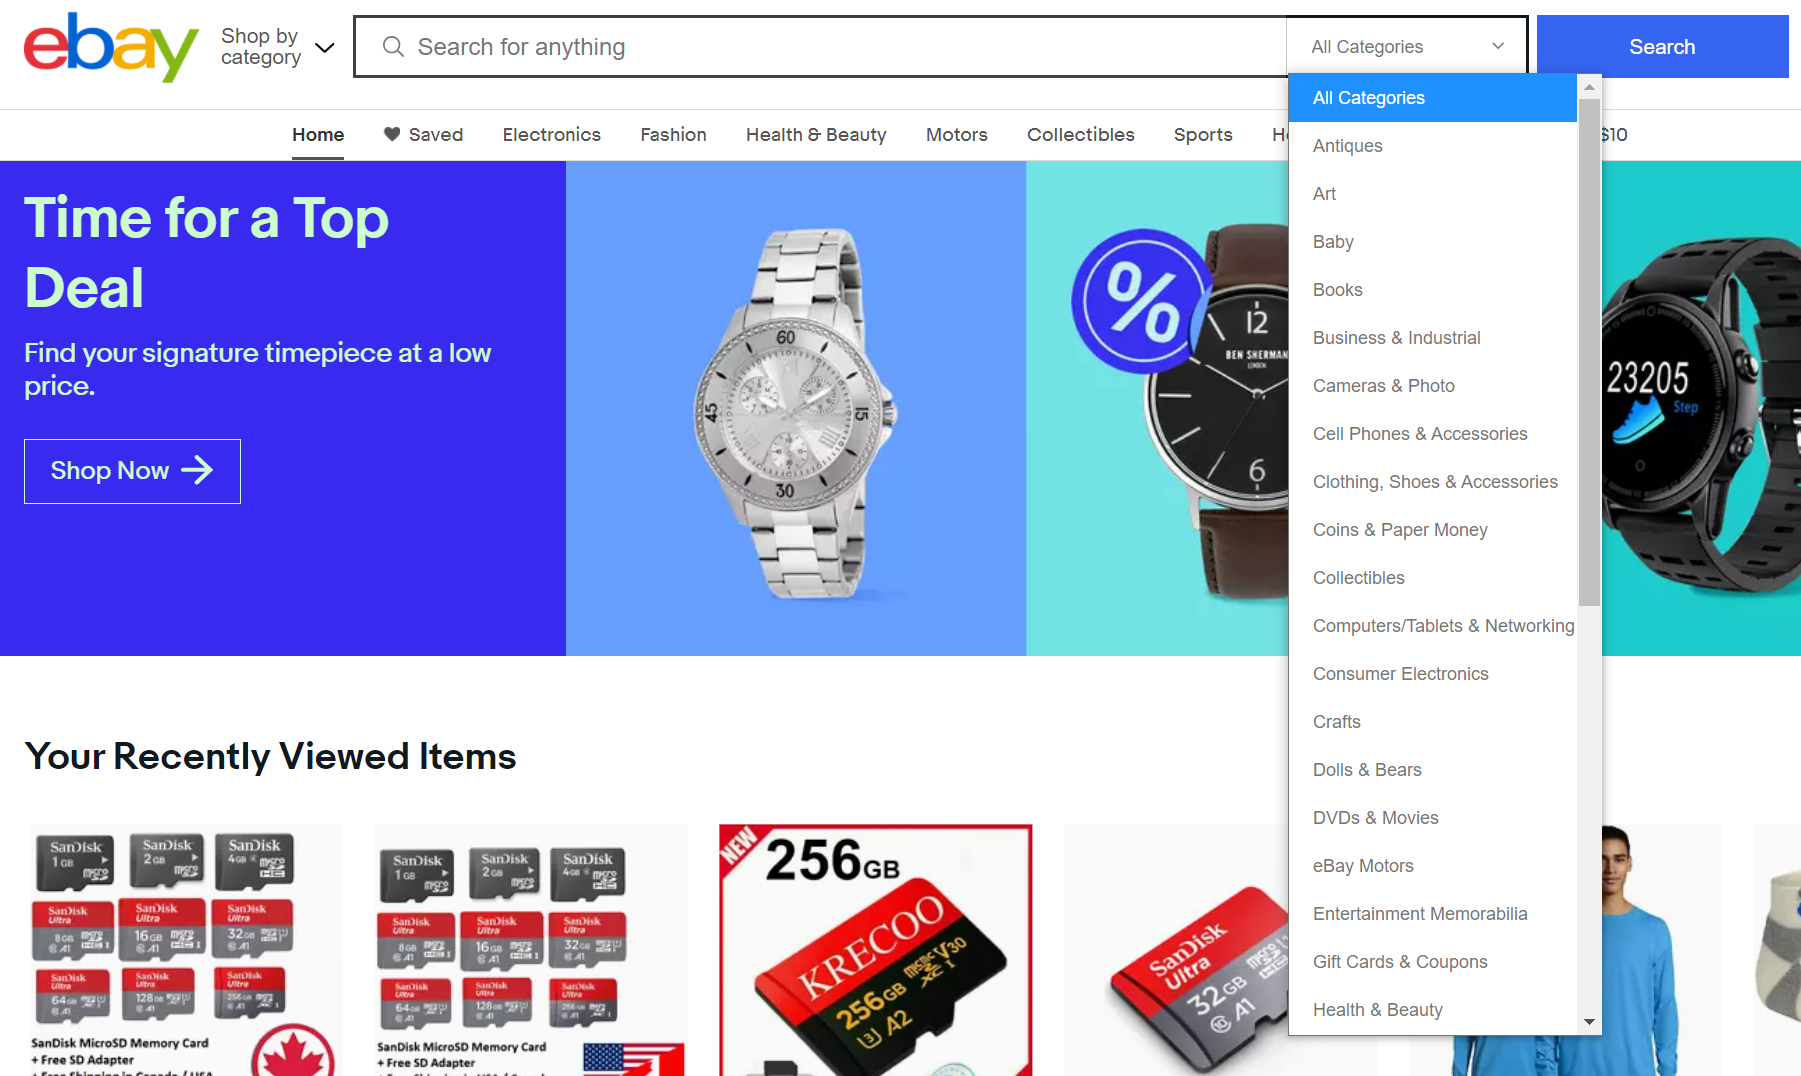 Filters and attributes on ecommerce site, Navigation filters on Ebay - Lisuto